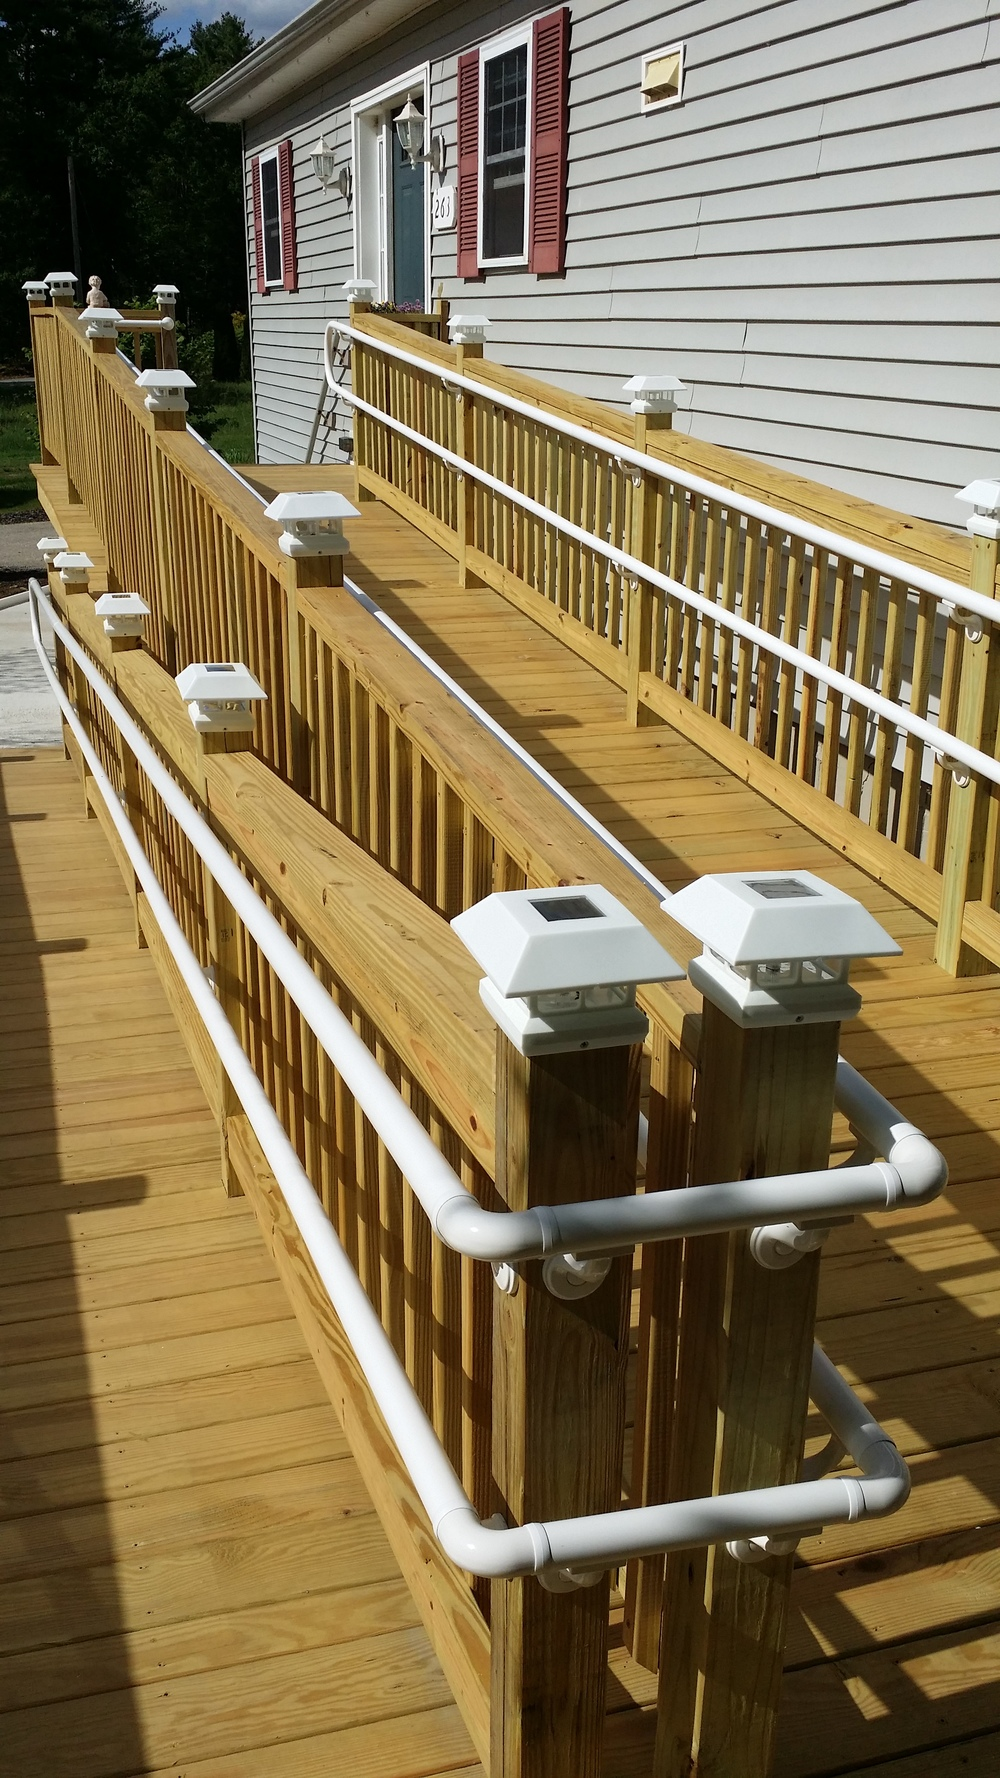 Handicap Ramp with RDI ADA Railings, another view